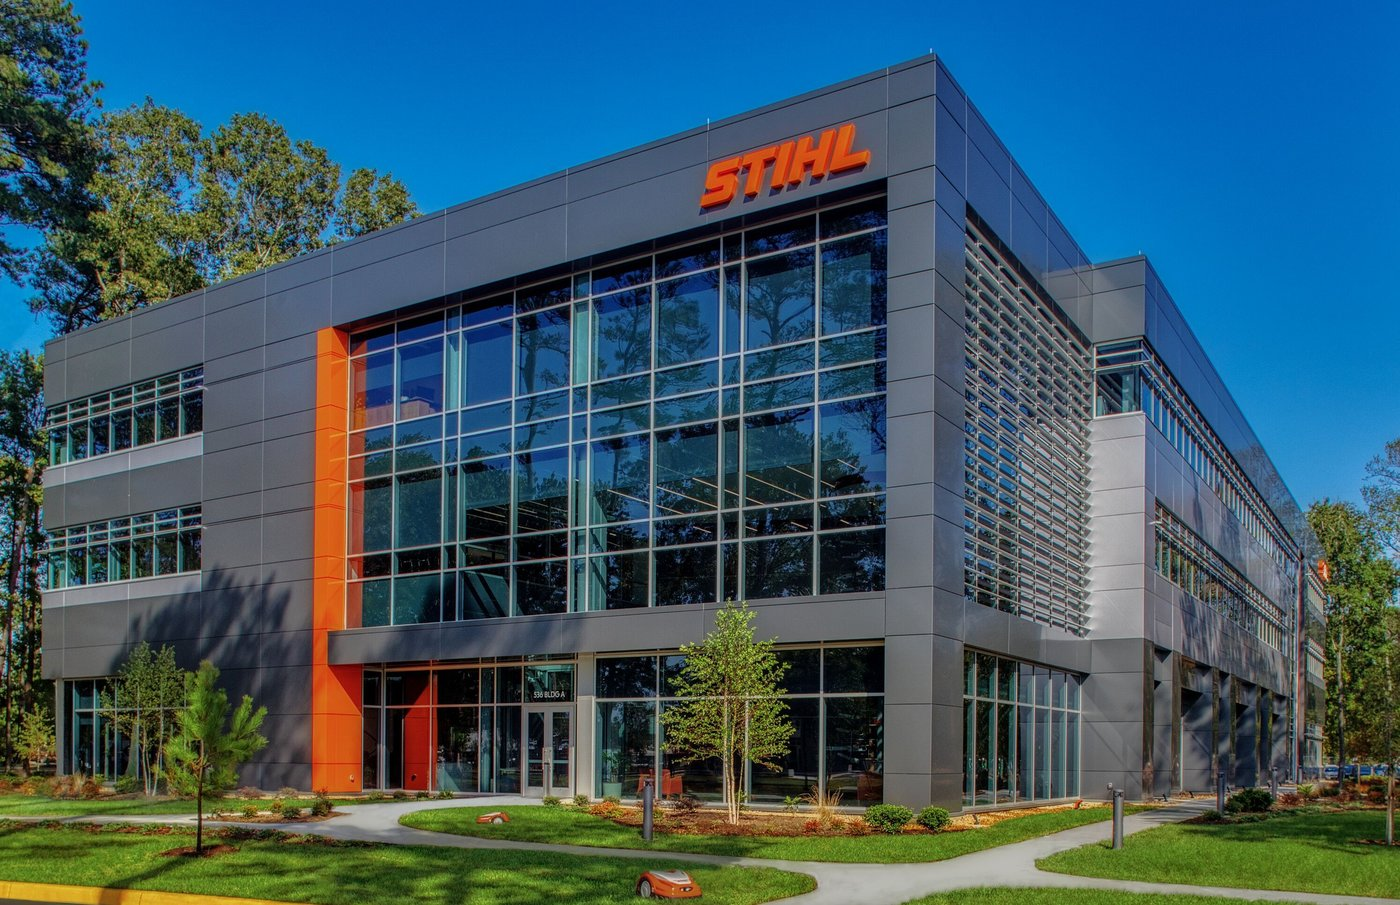 STIHL's new headquarters.